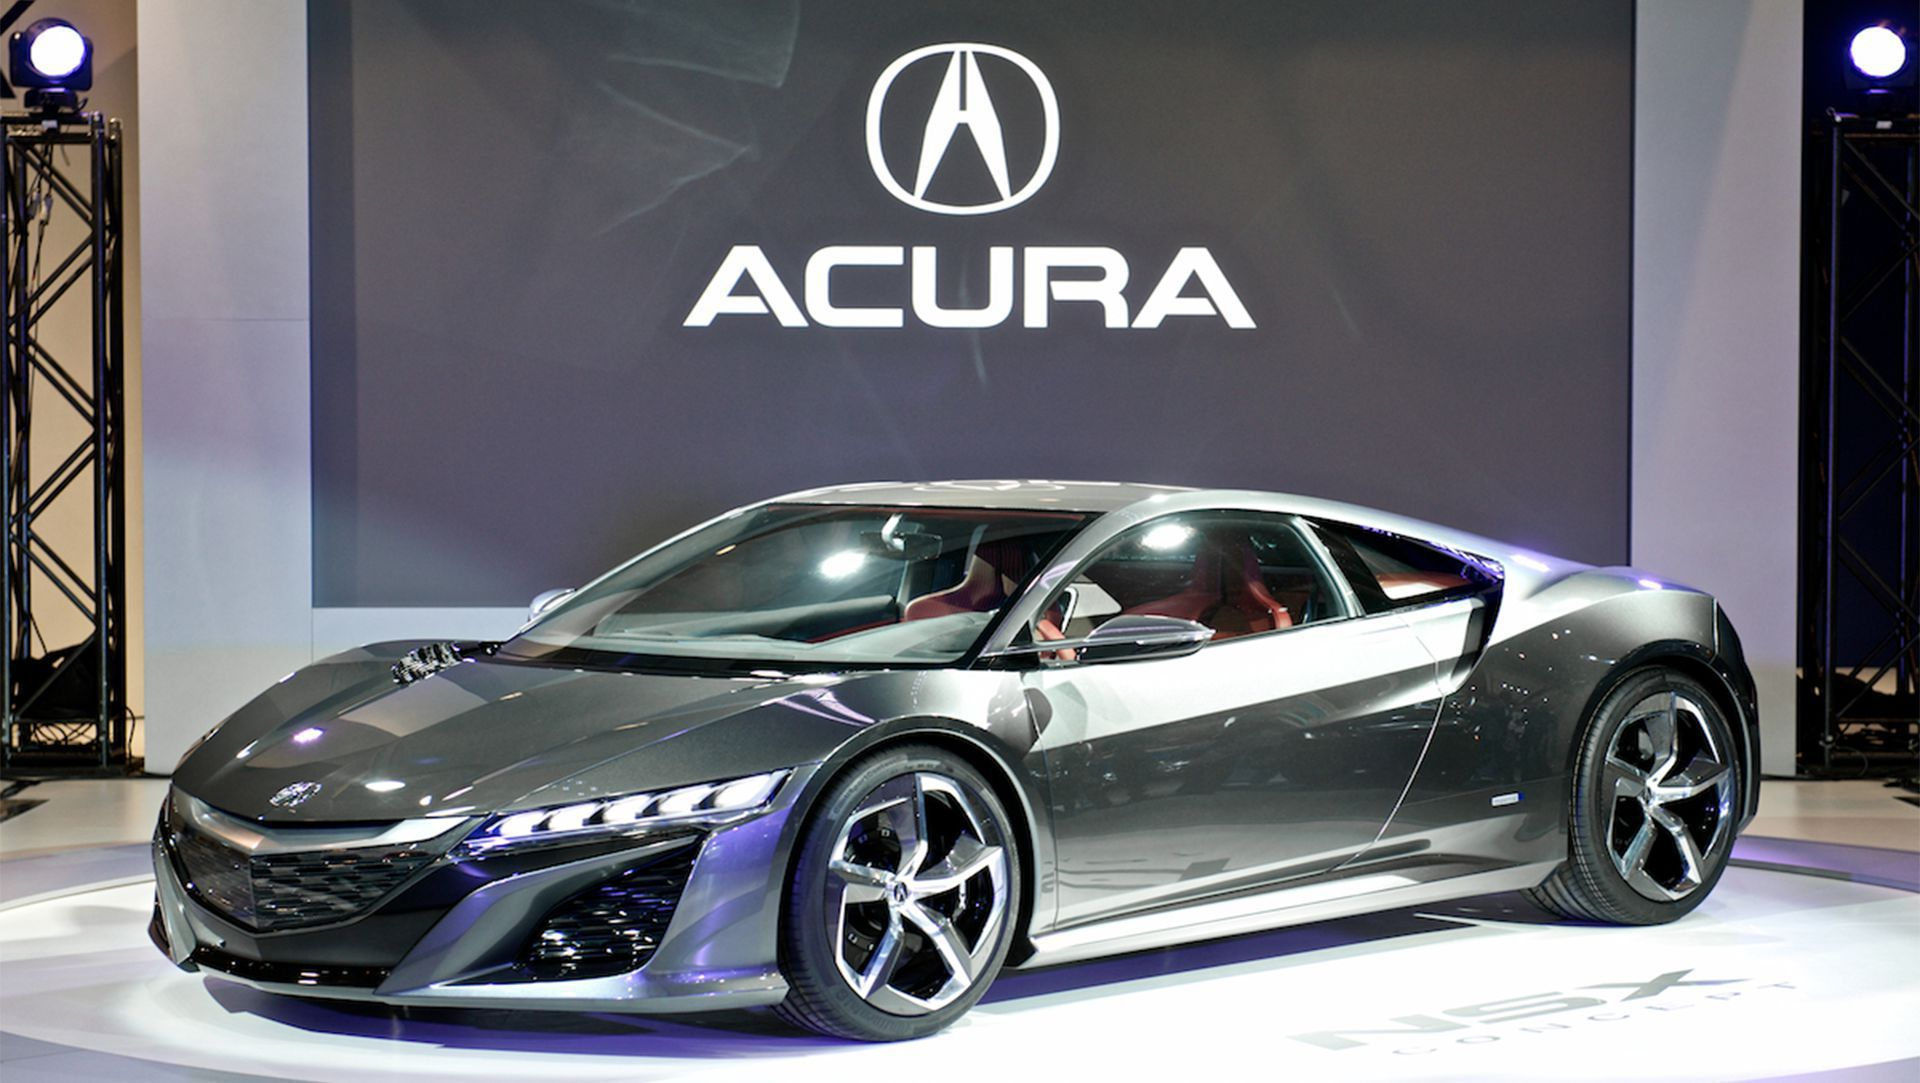 Acura Returns to the Super Bowl with New Brand mercial